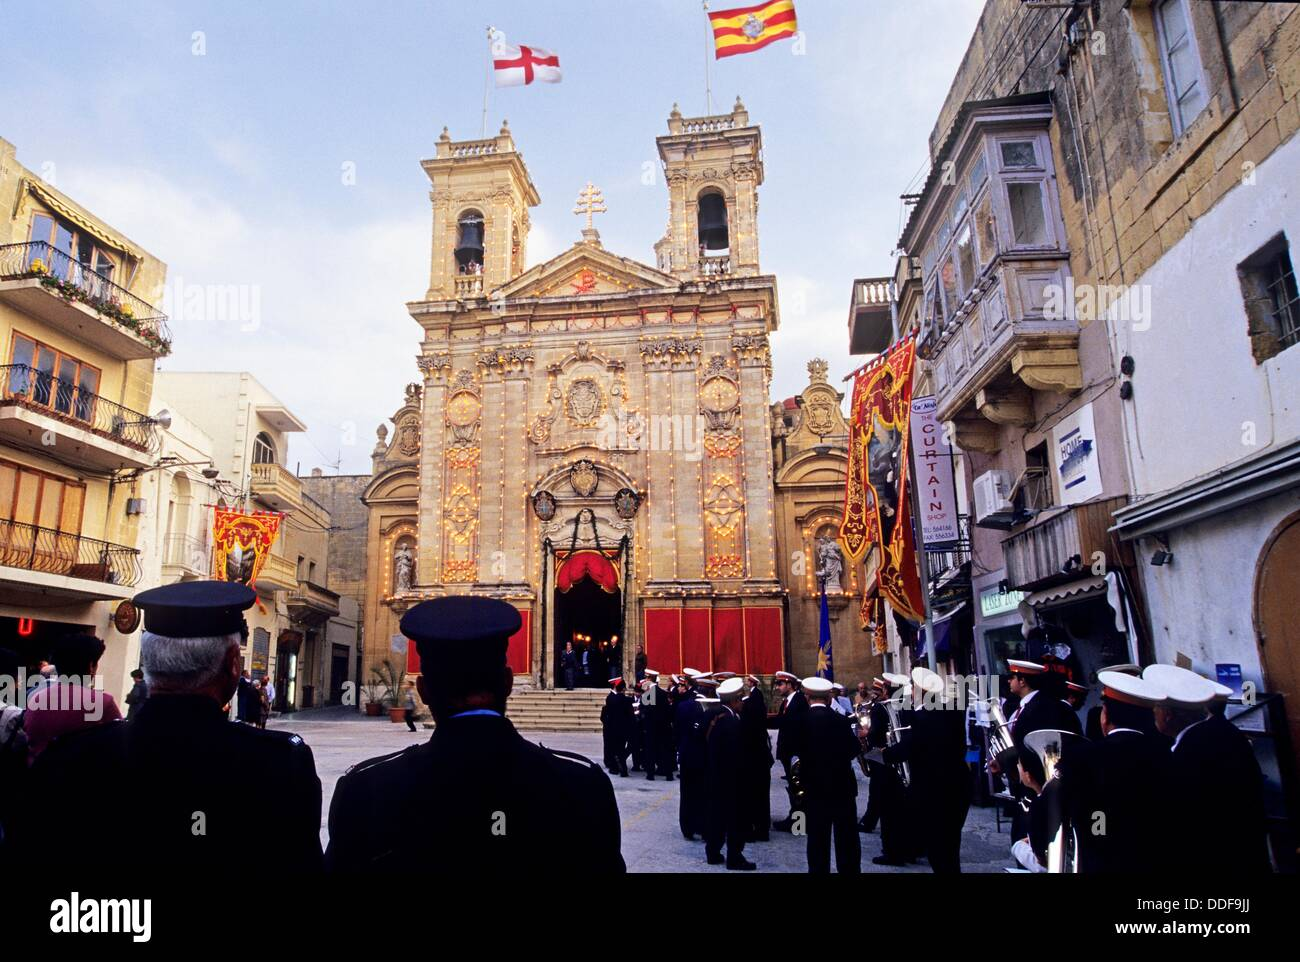 brass band in front of the St George´s Basilica, Victoria, Gozo, Malta, Mediterranean Sea, Europe - Stock Image